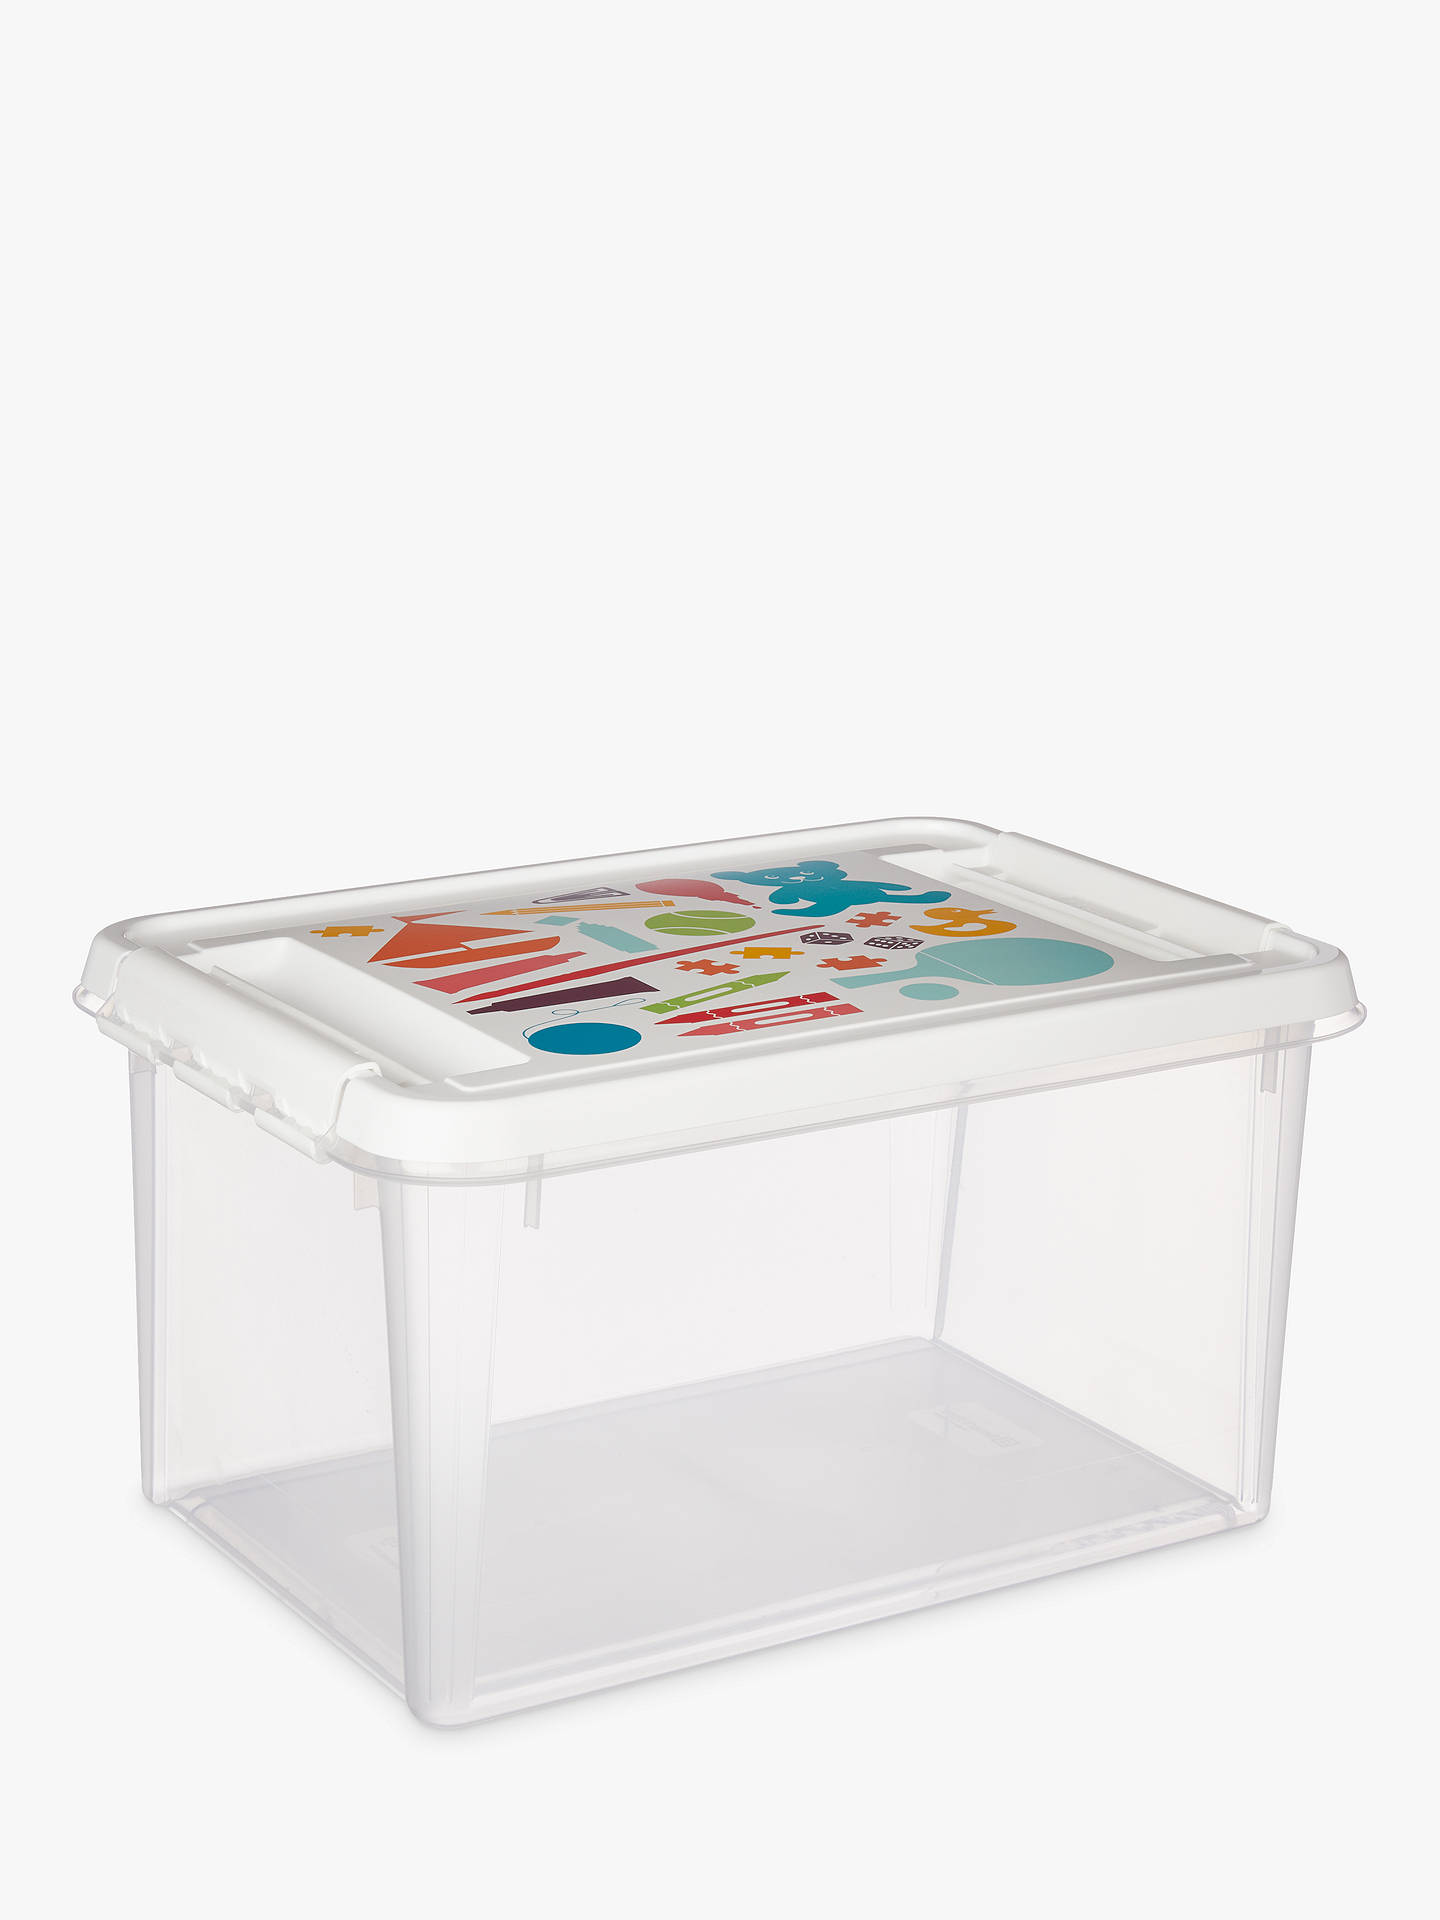 Buy Smartstore by Orthex Deco Plastic Toy Box, 32L Online at johnlewis.com